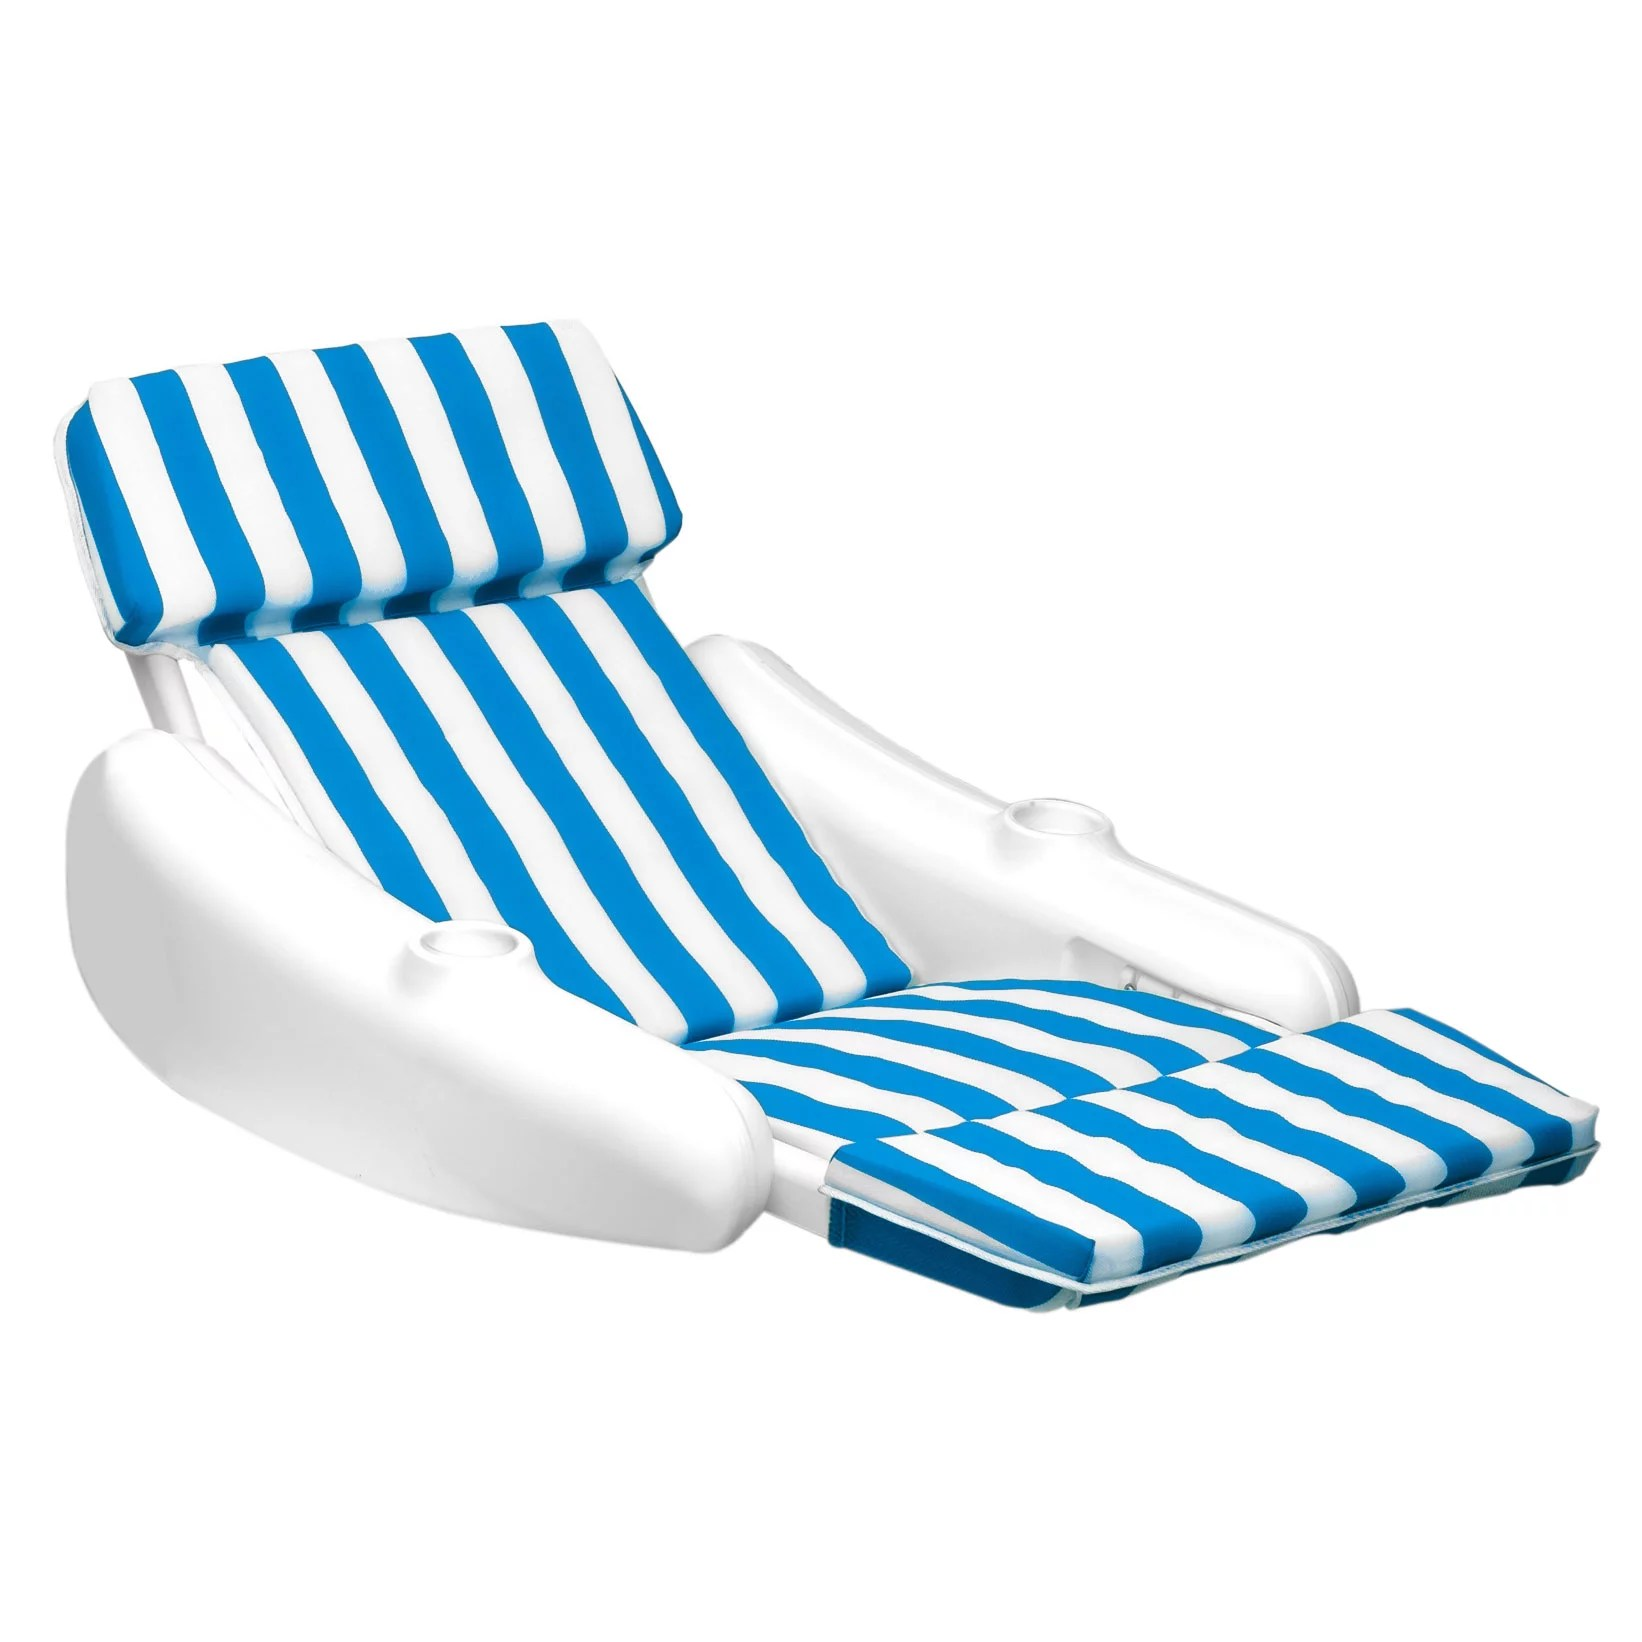 Pool Lounge Chair Swimline 10010 Sunchaser Swimming Pool Padded Floating Luxury Chair Lounger